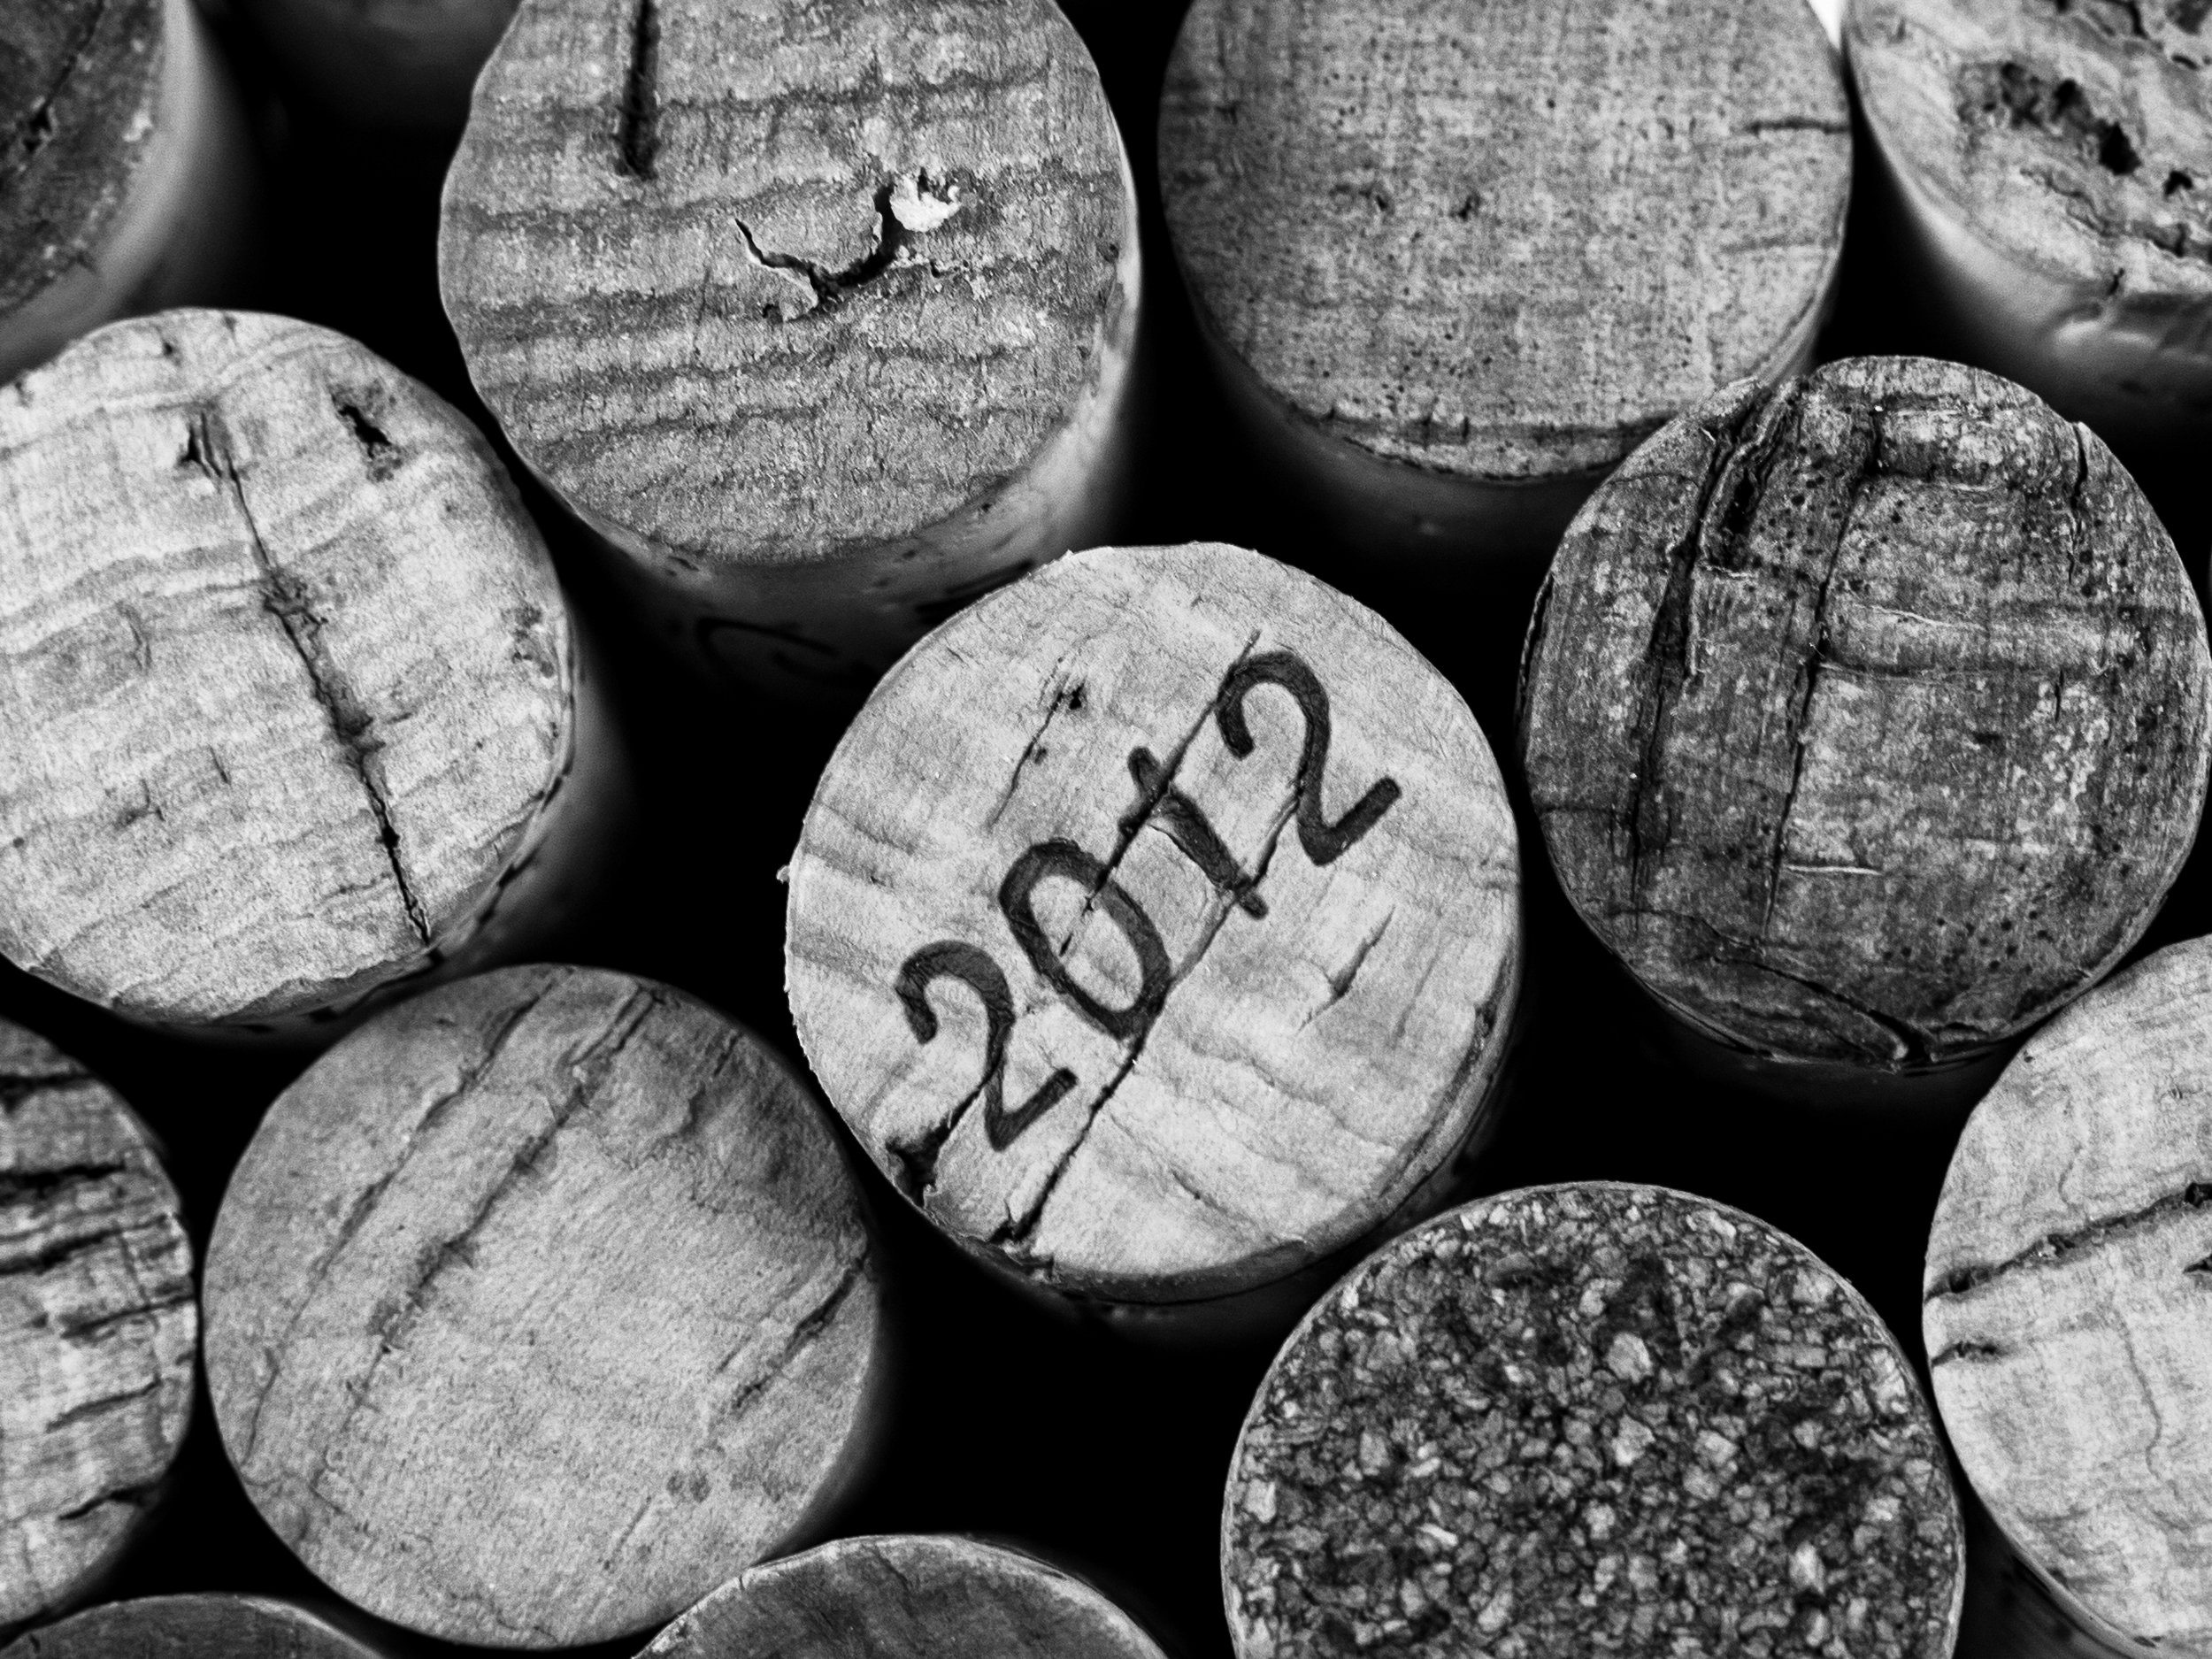 Musings by the Glass - Cork vs Screw Cap - Corks Black and White